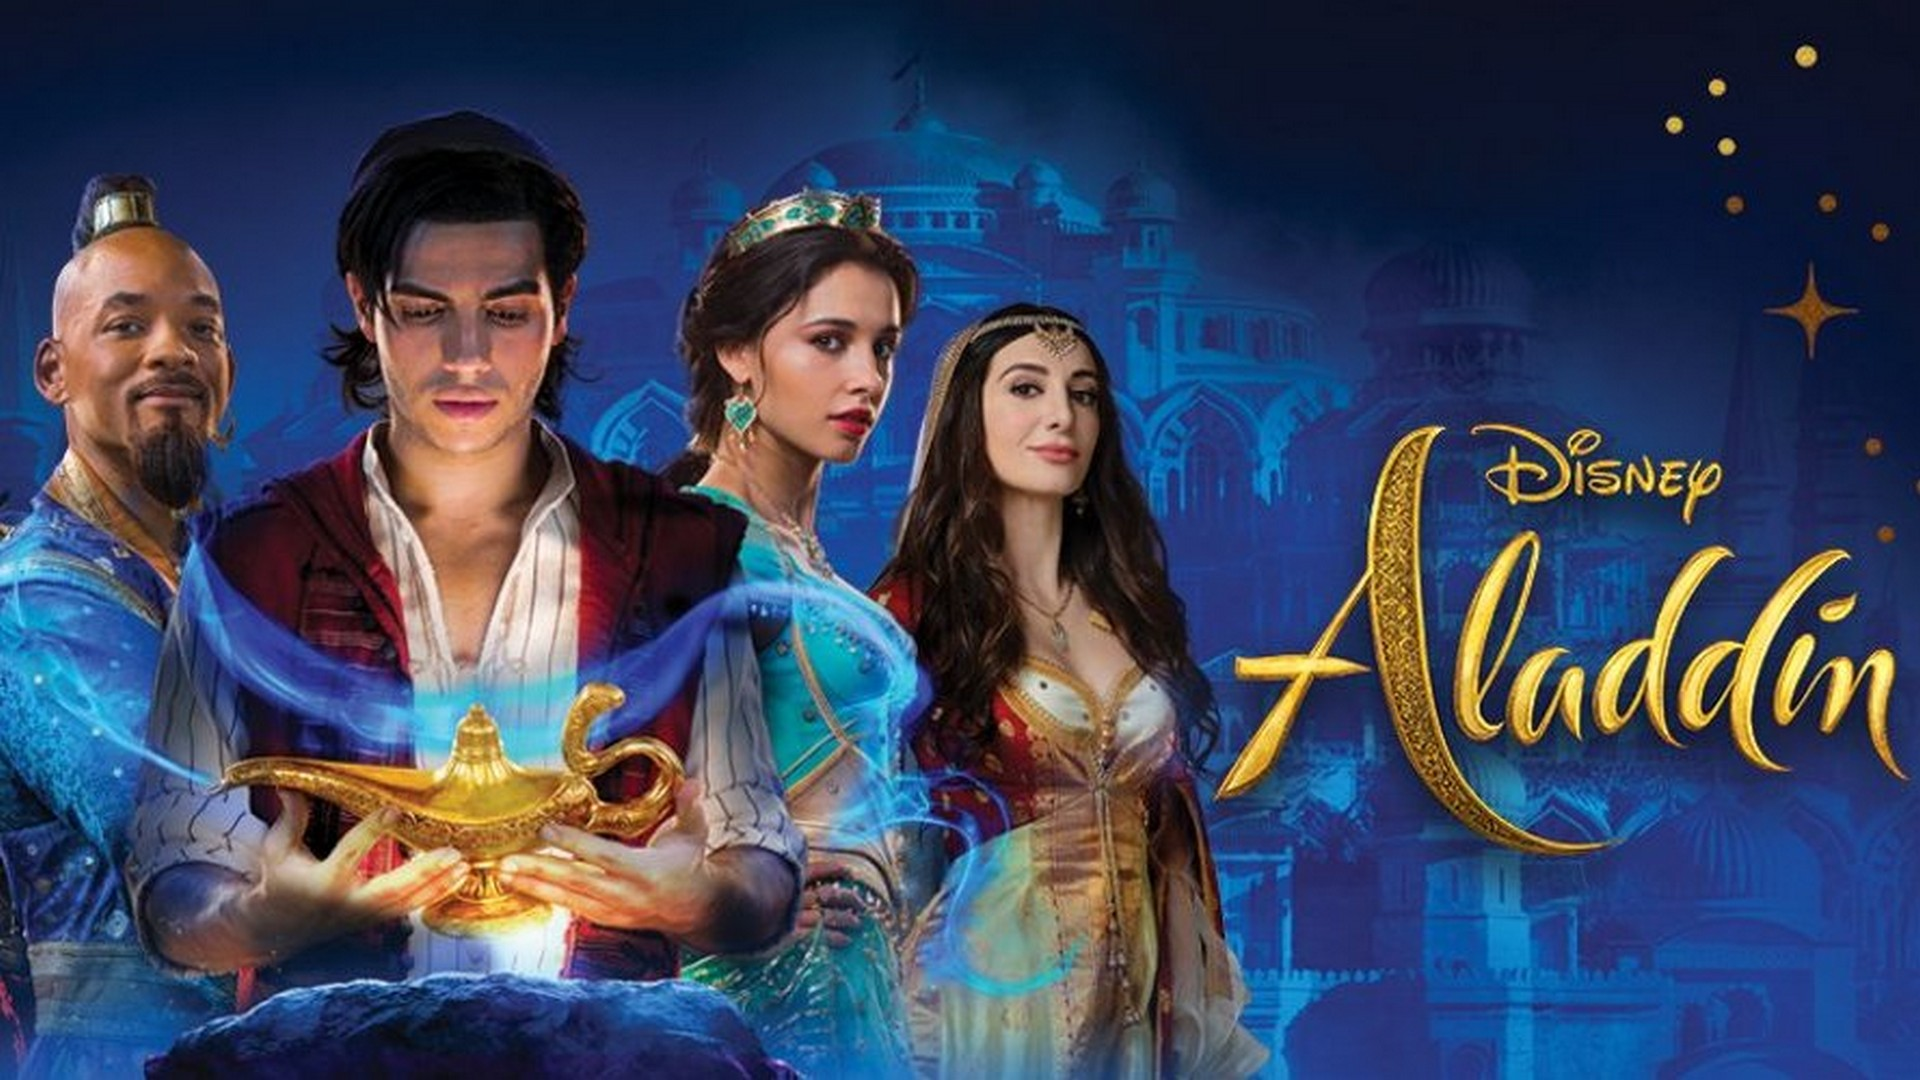 Malls New Movies Aladdin